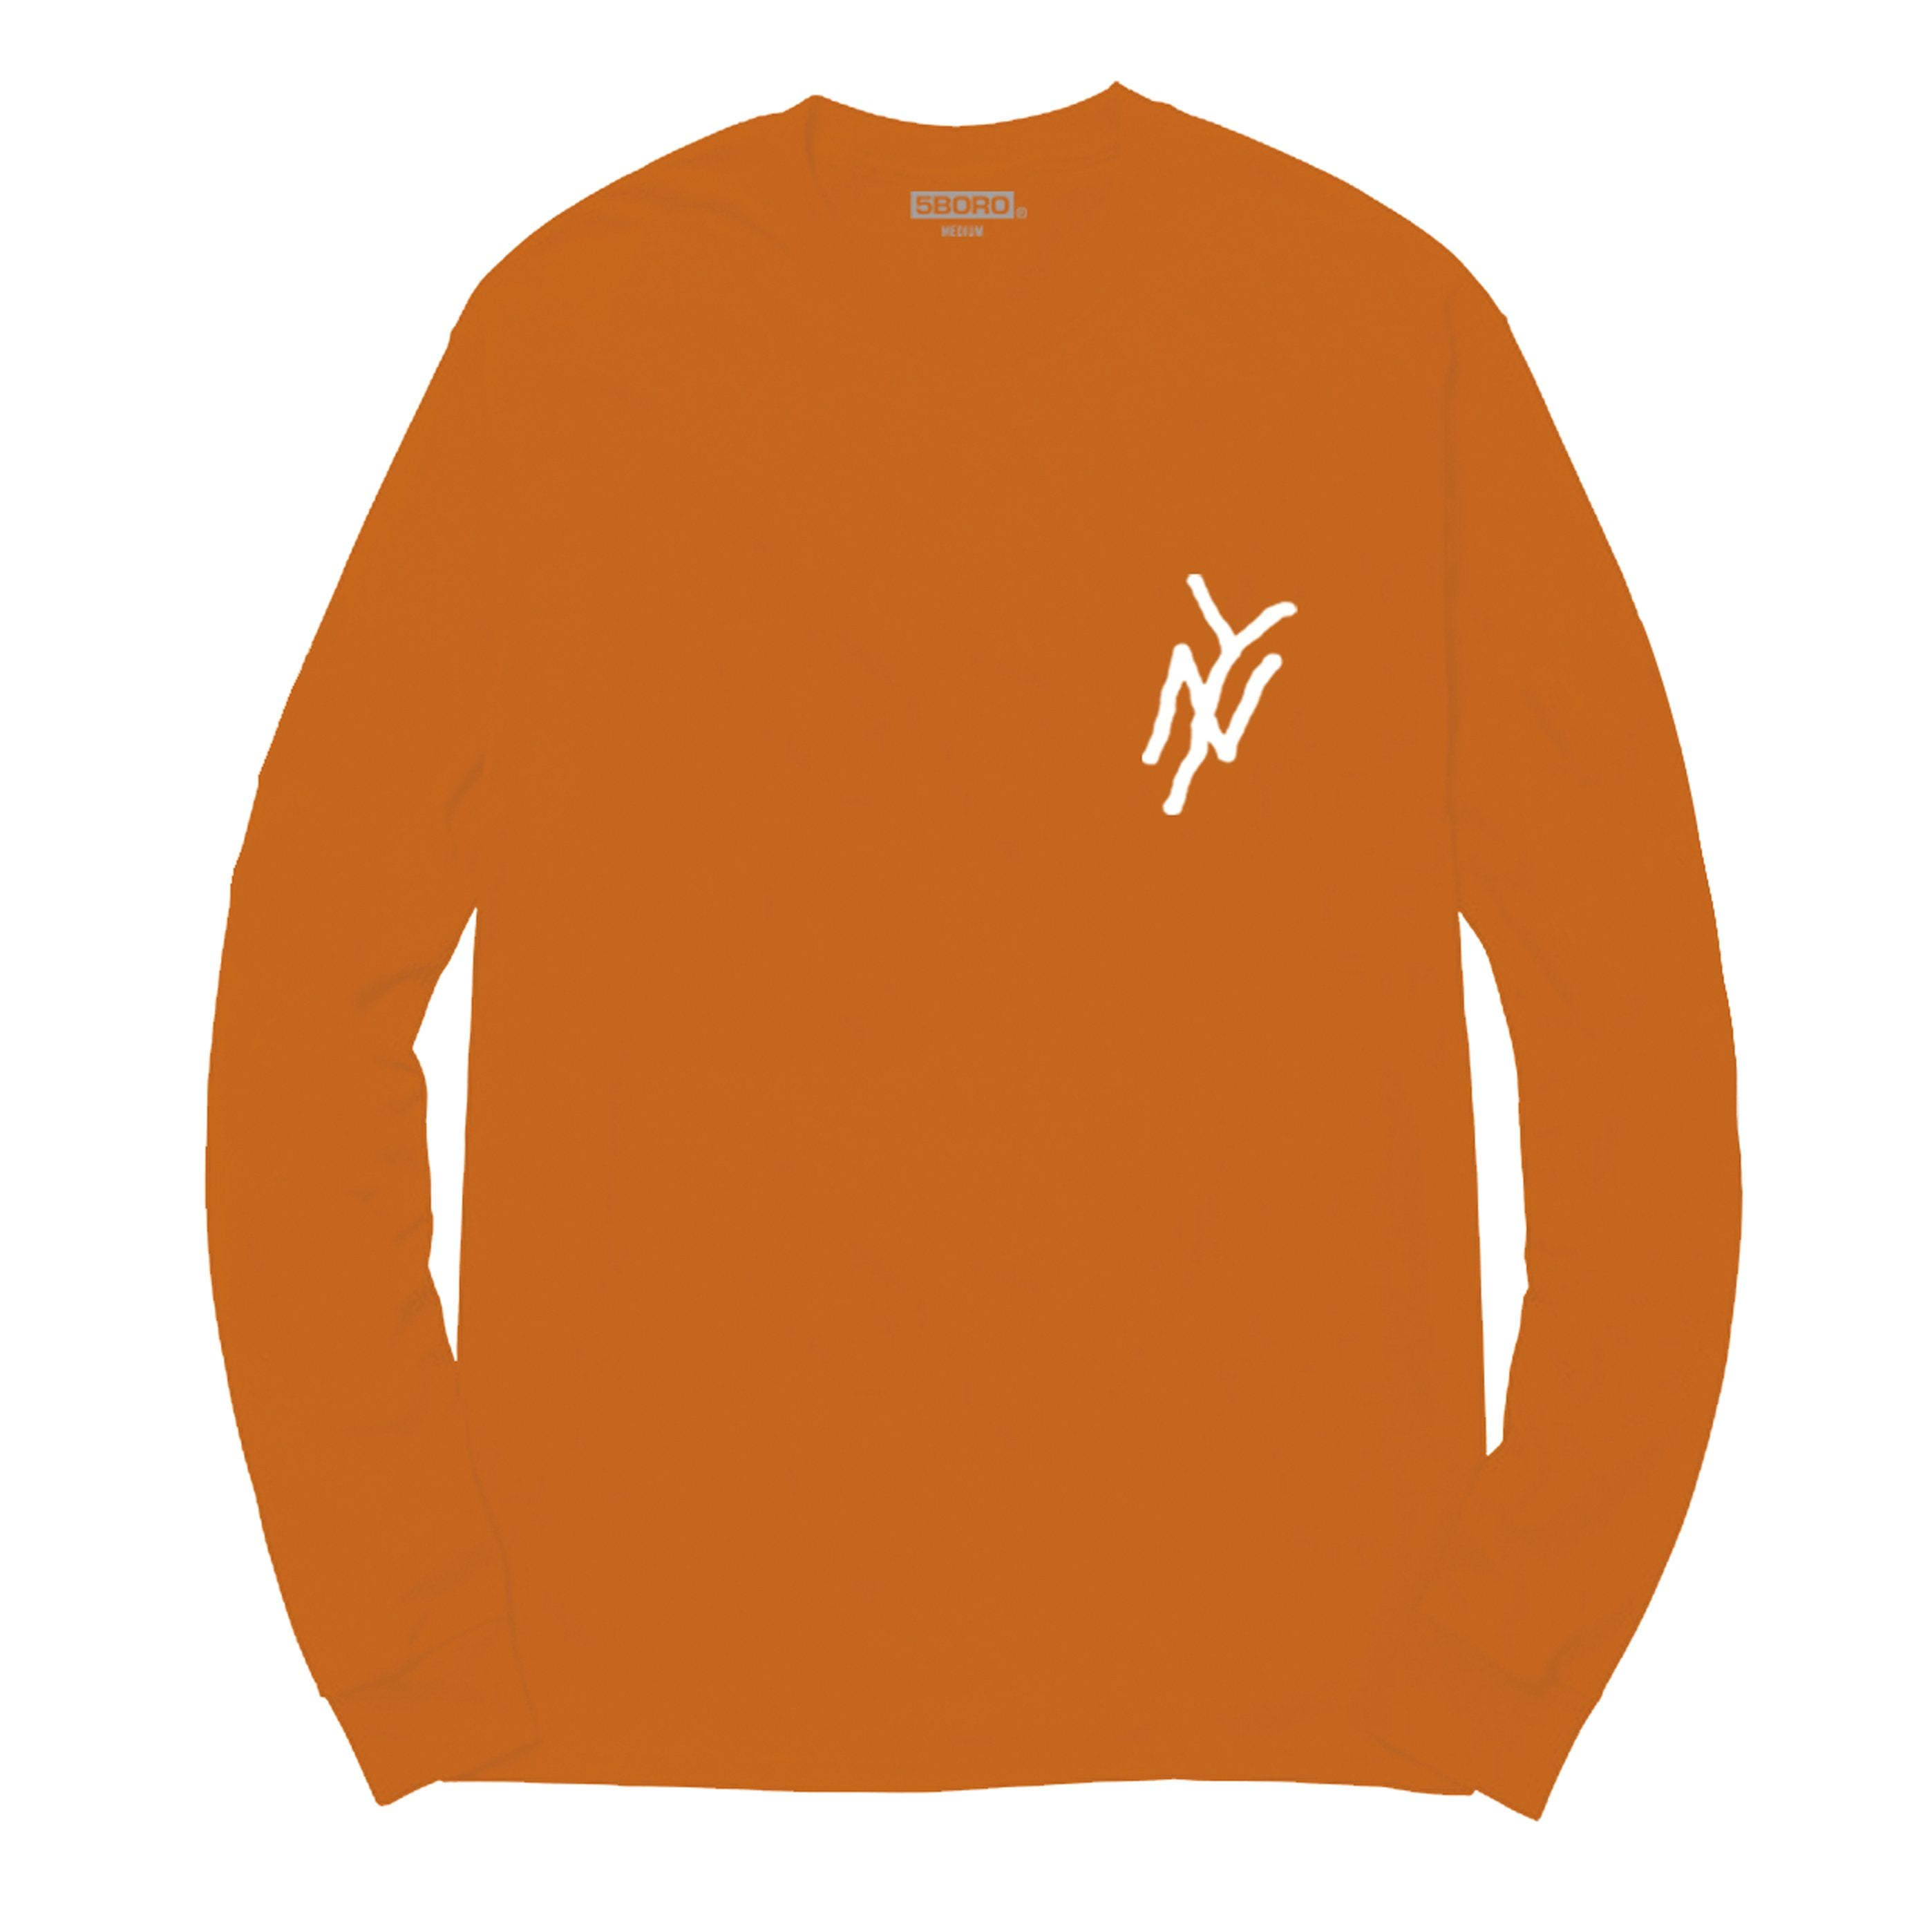 5Boro NY MONOGRAM L/S ORANGE